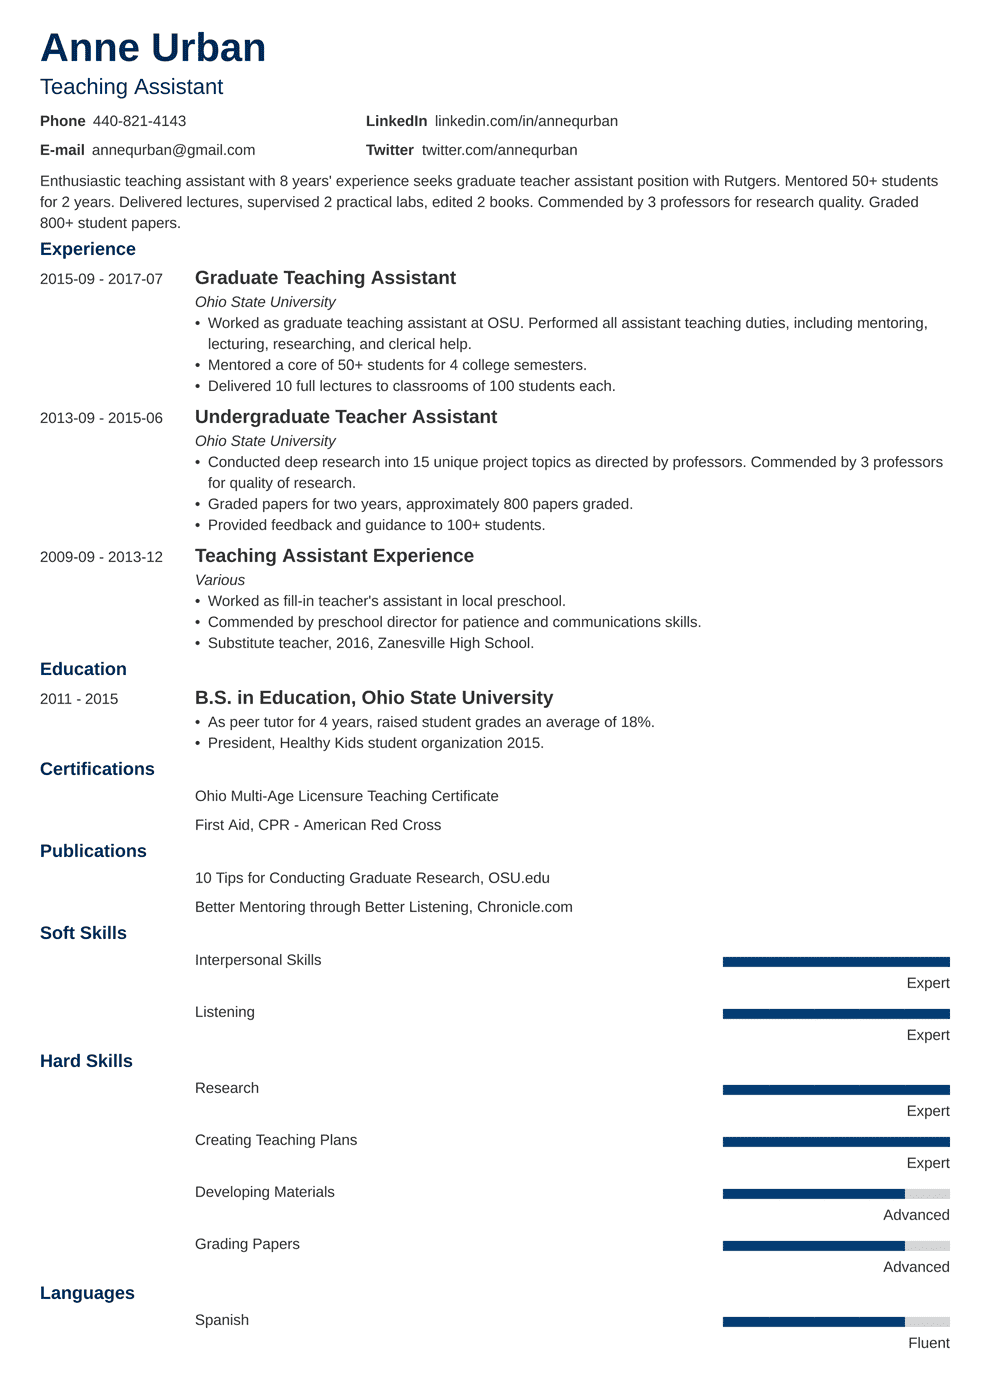 Teaching Assistant Resume: Sample & Writing Guide [20+ Examples]